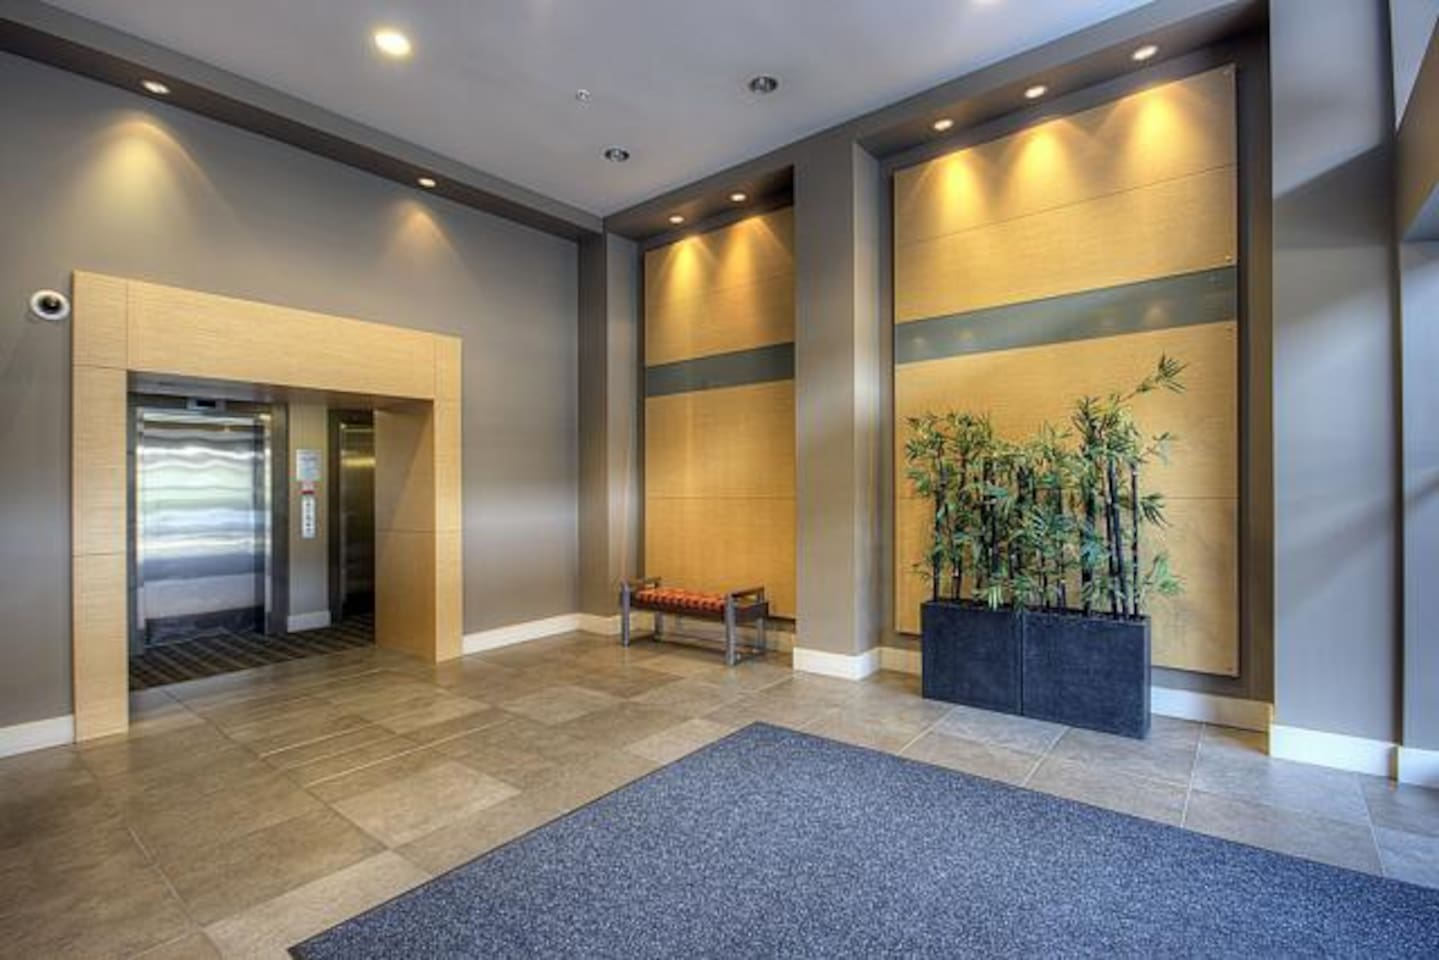 One of the newest buildings in Yaletown, the entrance is exquisite!